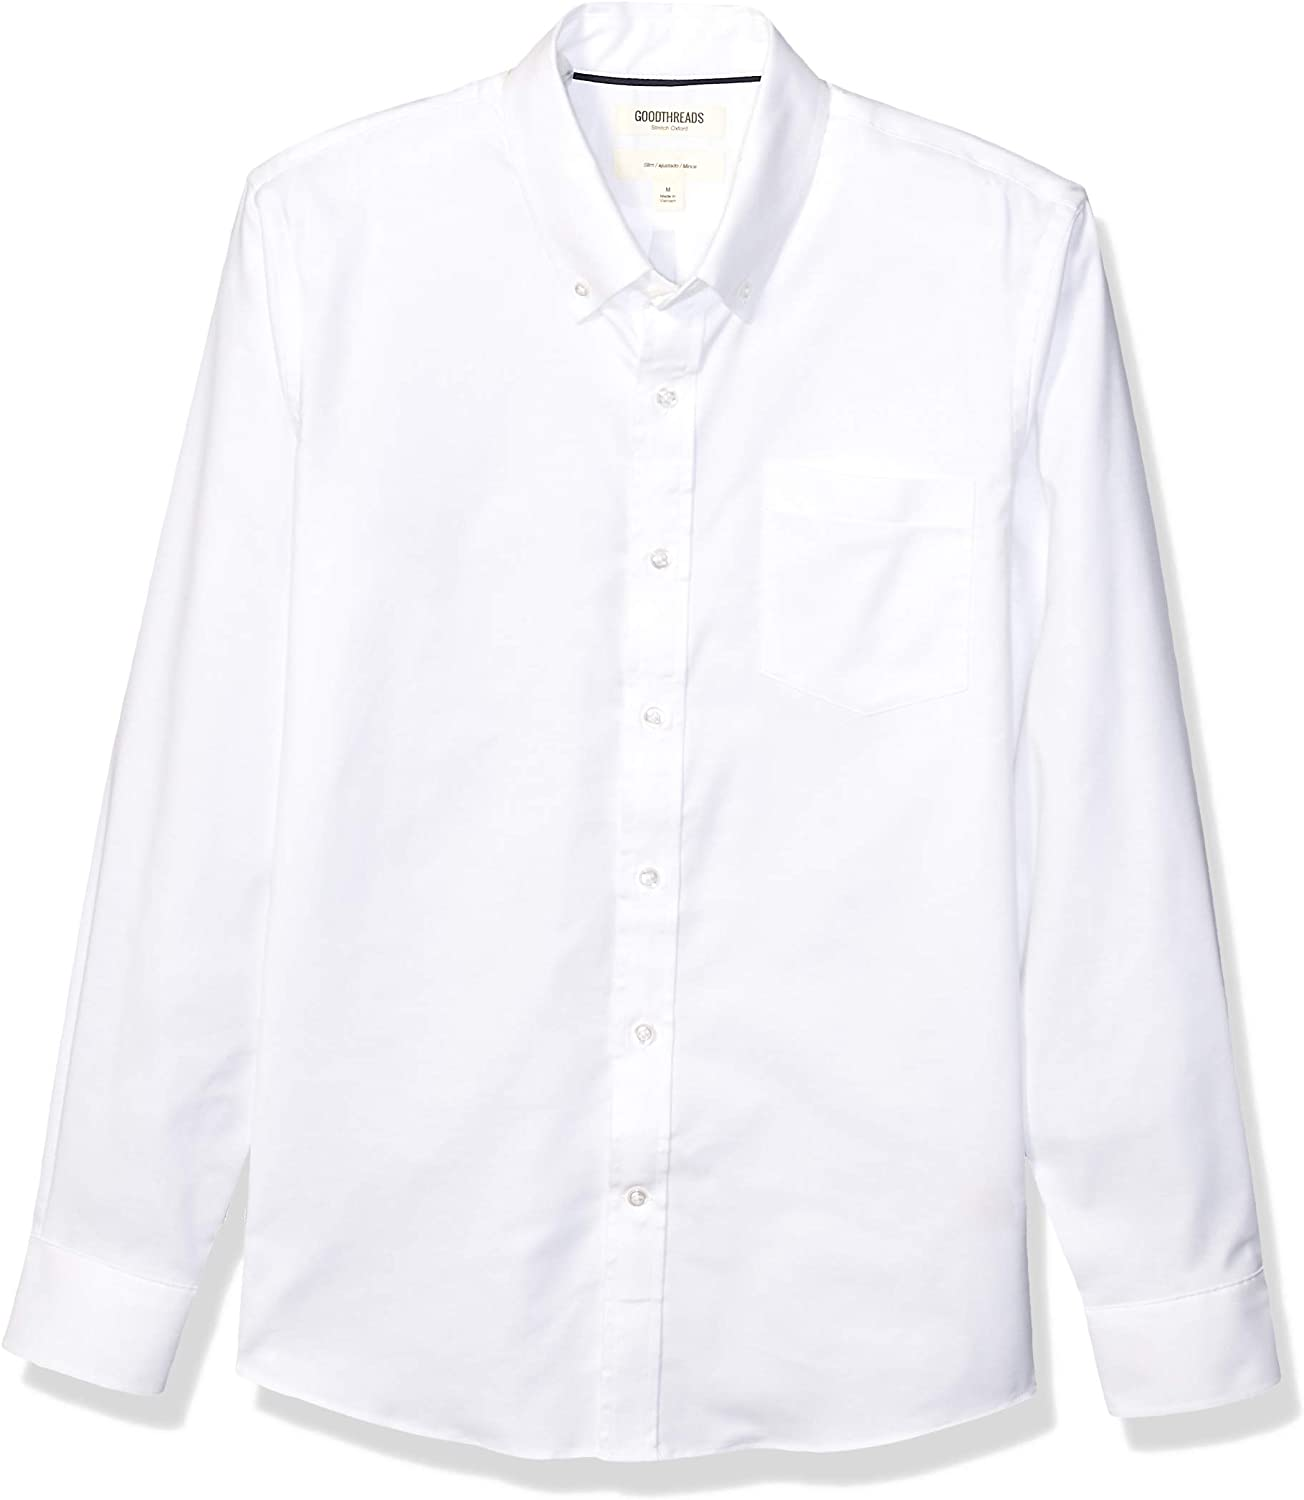 Goodthreads Men's Slim-Fit Long-Sleeve Wrinkle Resistant Comfort Stretch Oxford Shirt with Easy Care